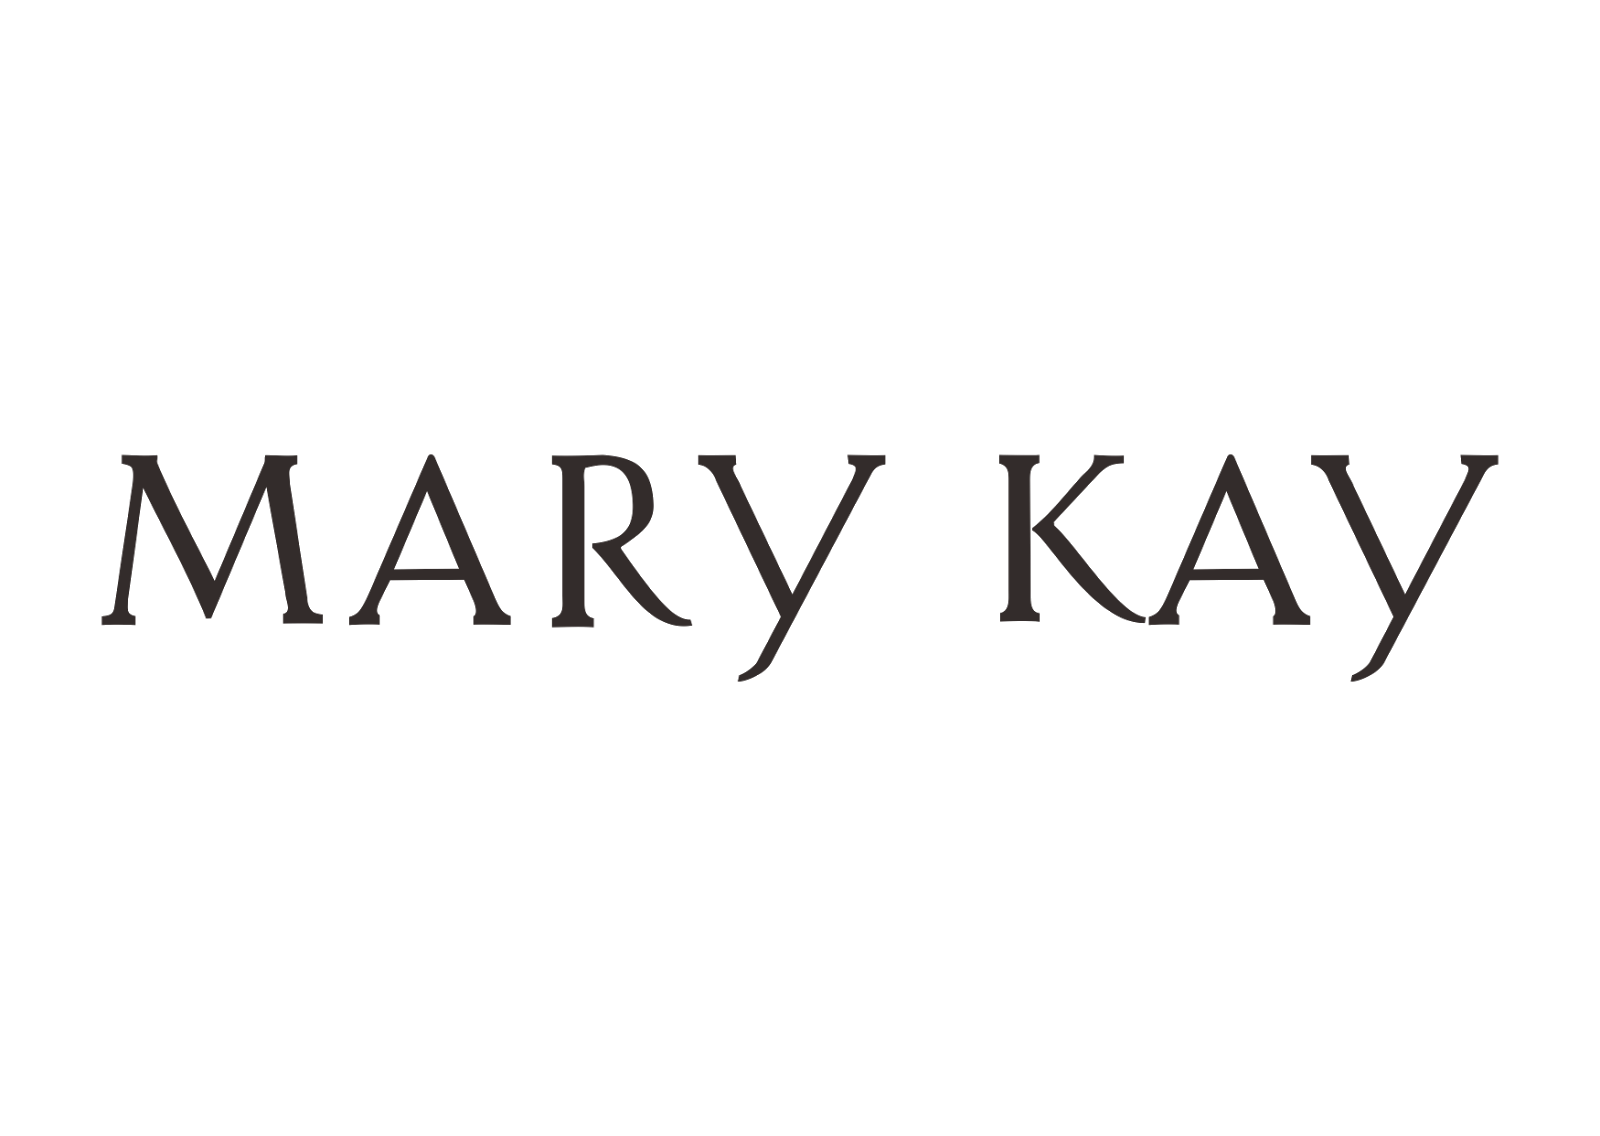 mary kay logo vector tri kappa iota chapter valparaiso rh trikappavalpo org mary kay login mary kay logos download